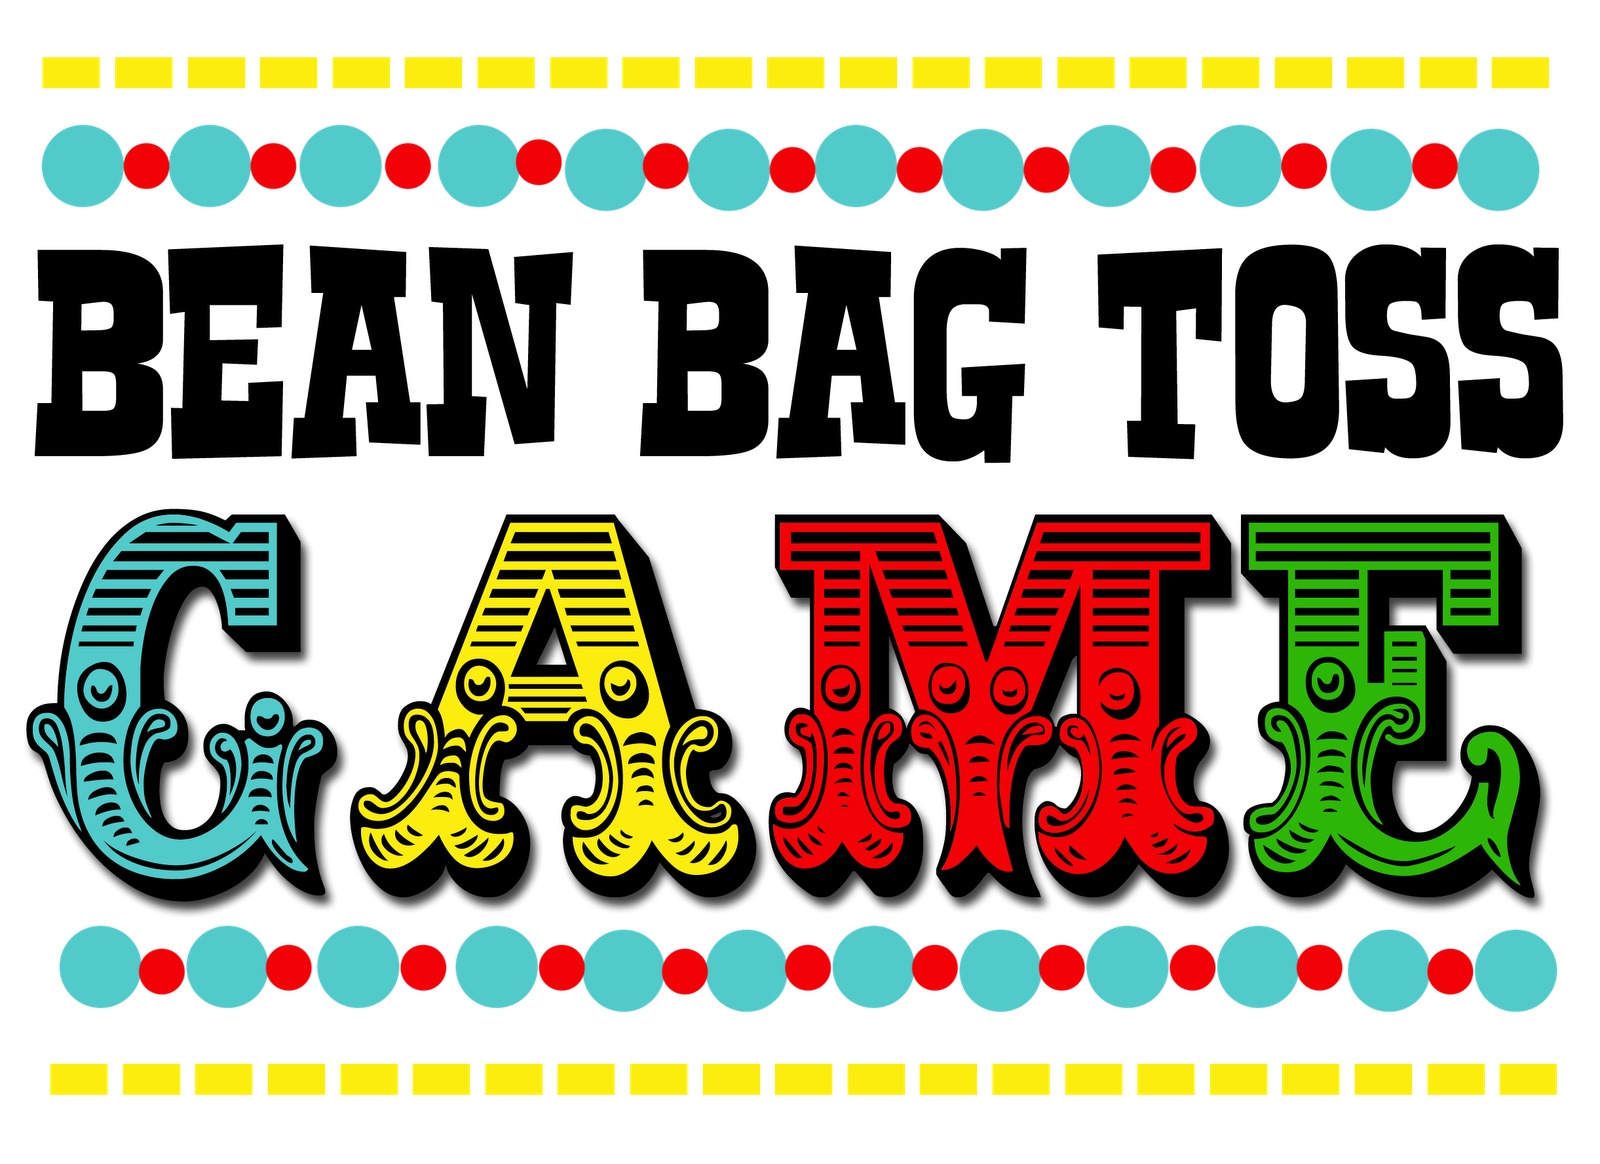 clipart black and white download Printable game signs spring. Booth clipart kids carnival games